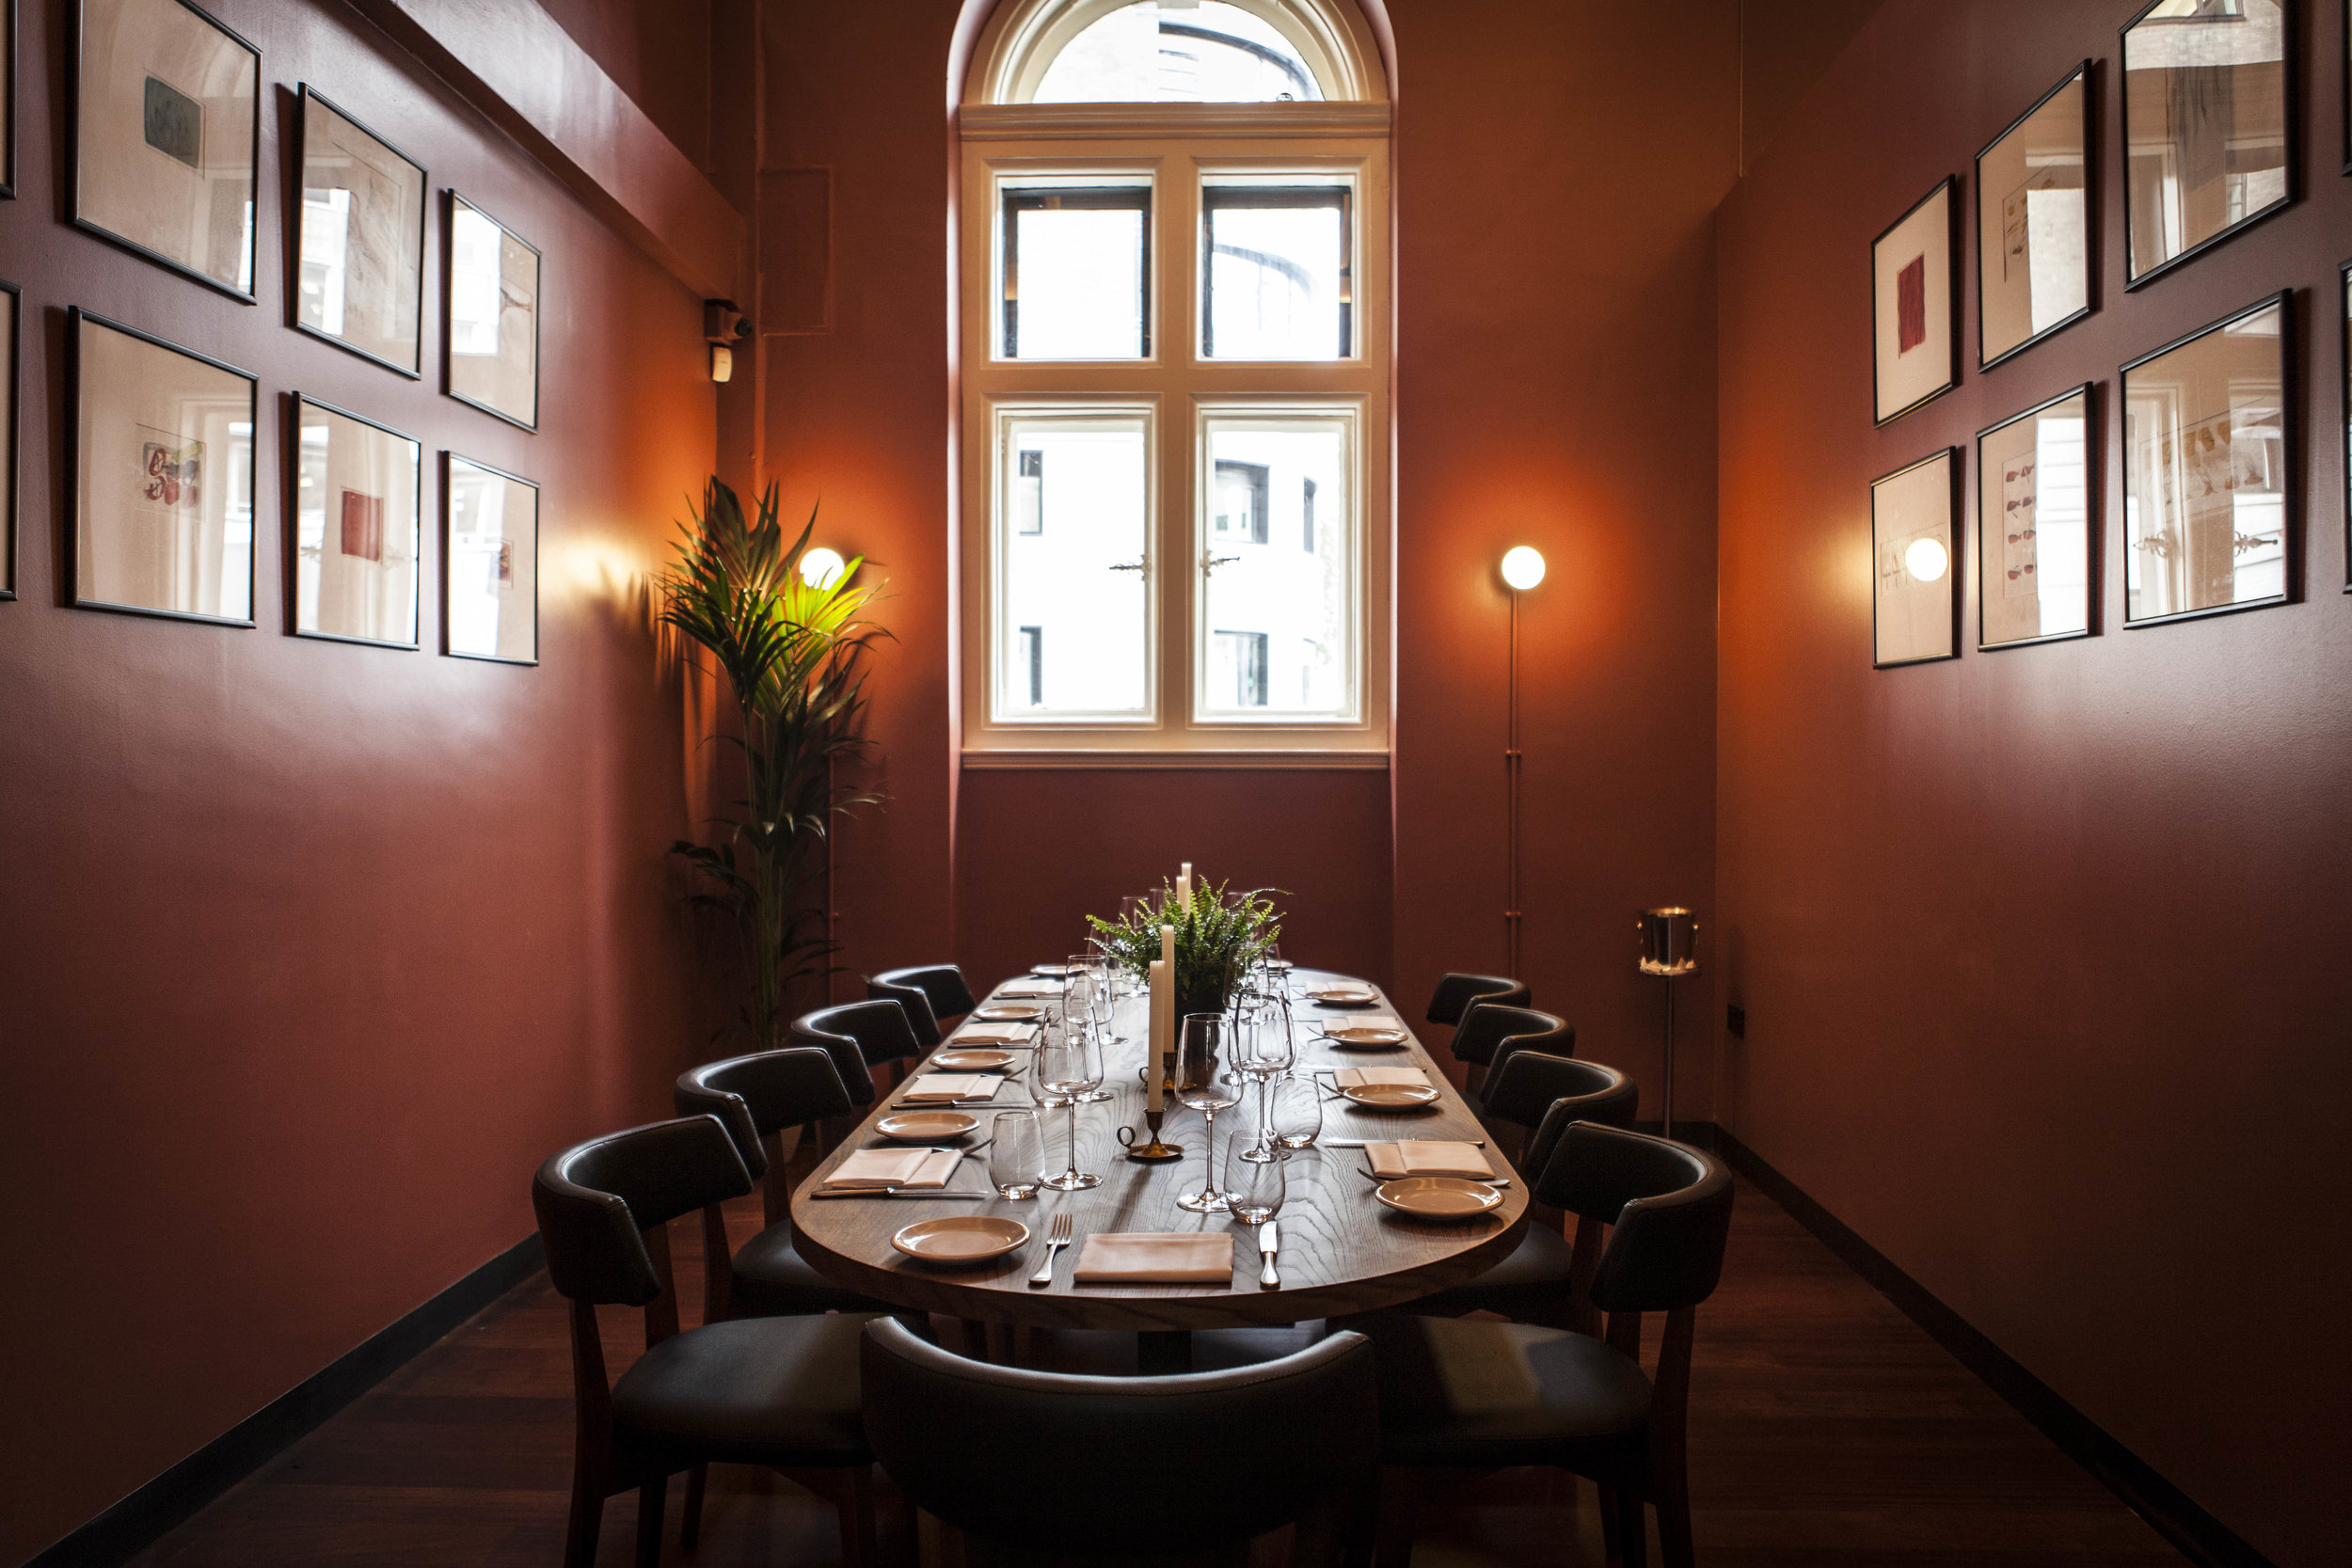 PRIVATE_DINING_ROOMS-7.jpg